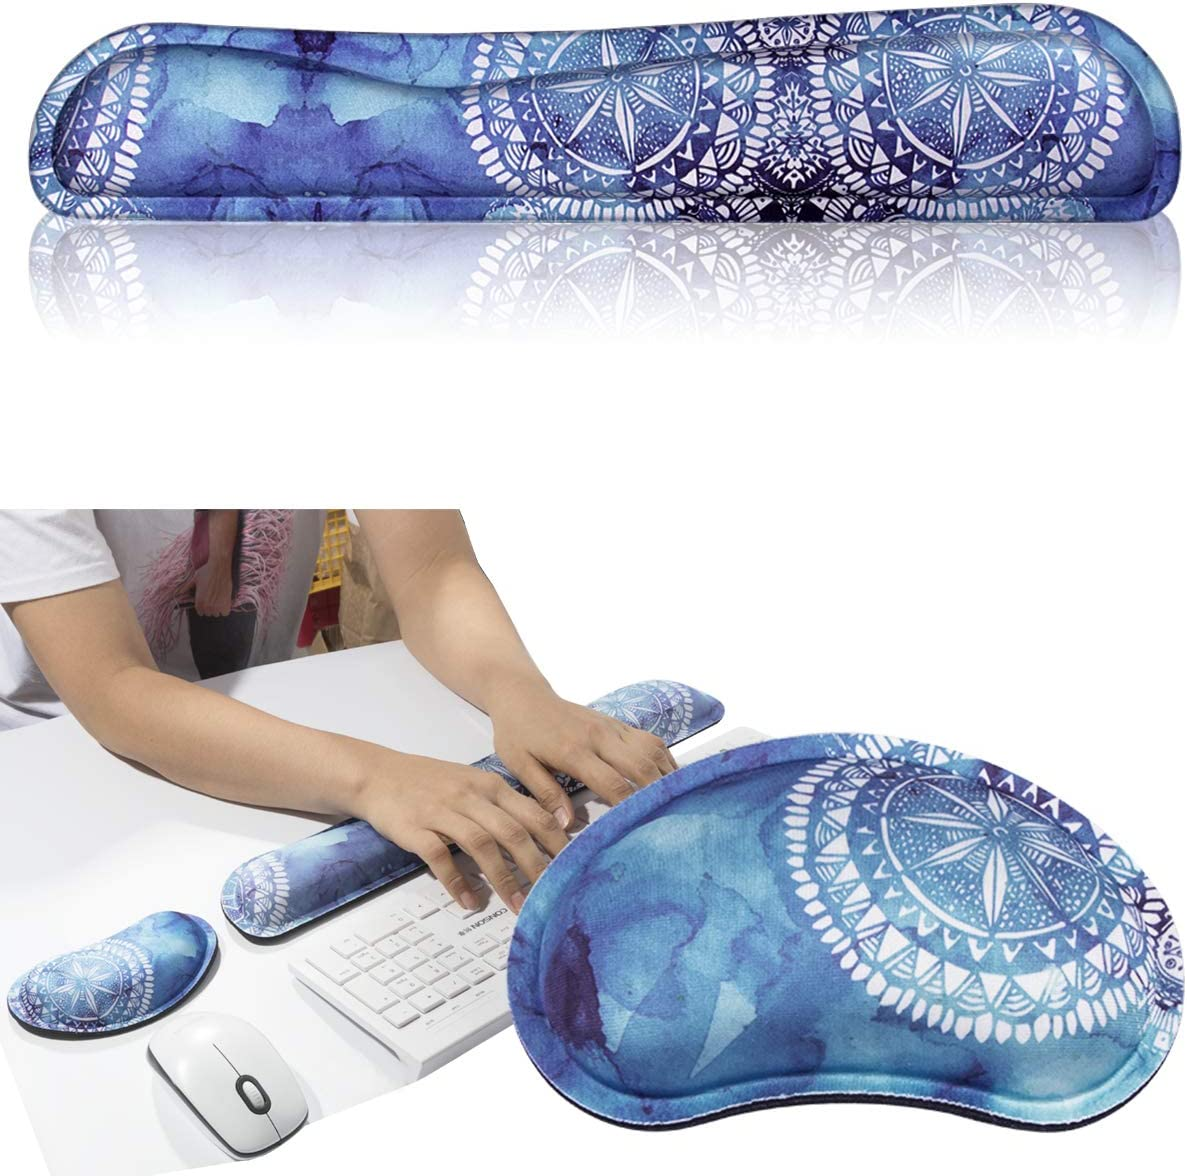 Ergonomic Support Laptop Lightweight for Comfortably Typing Pain Relif and Repair FF1 Memory Foam Mouse Pad Keyboard Wrist Rest Support Durable for Office Premium Quality Computer